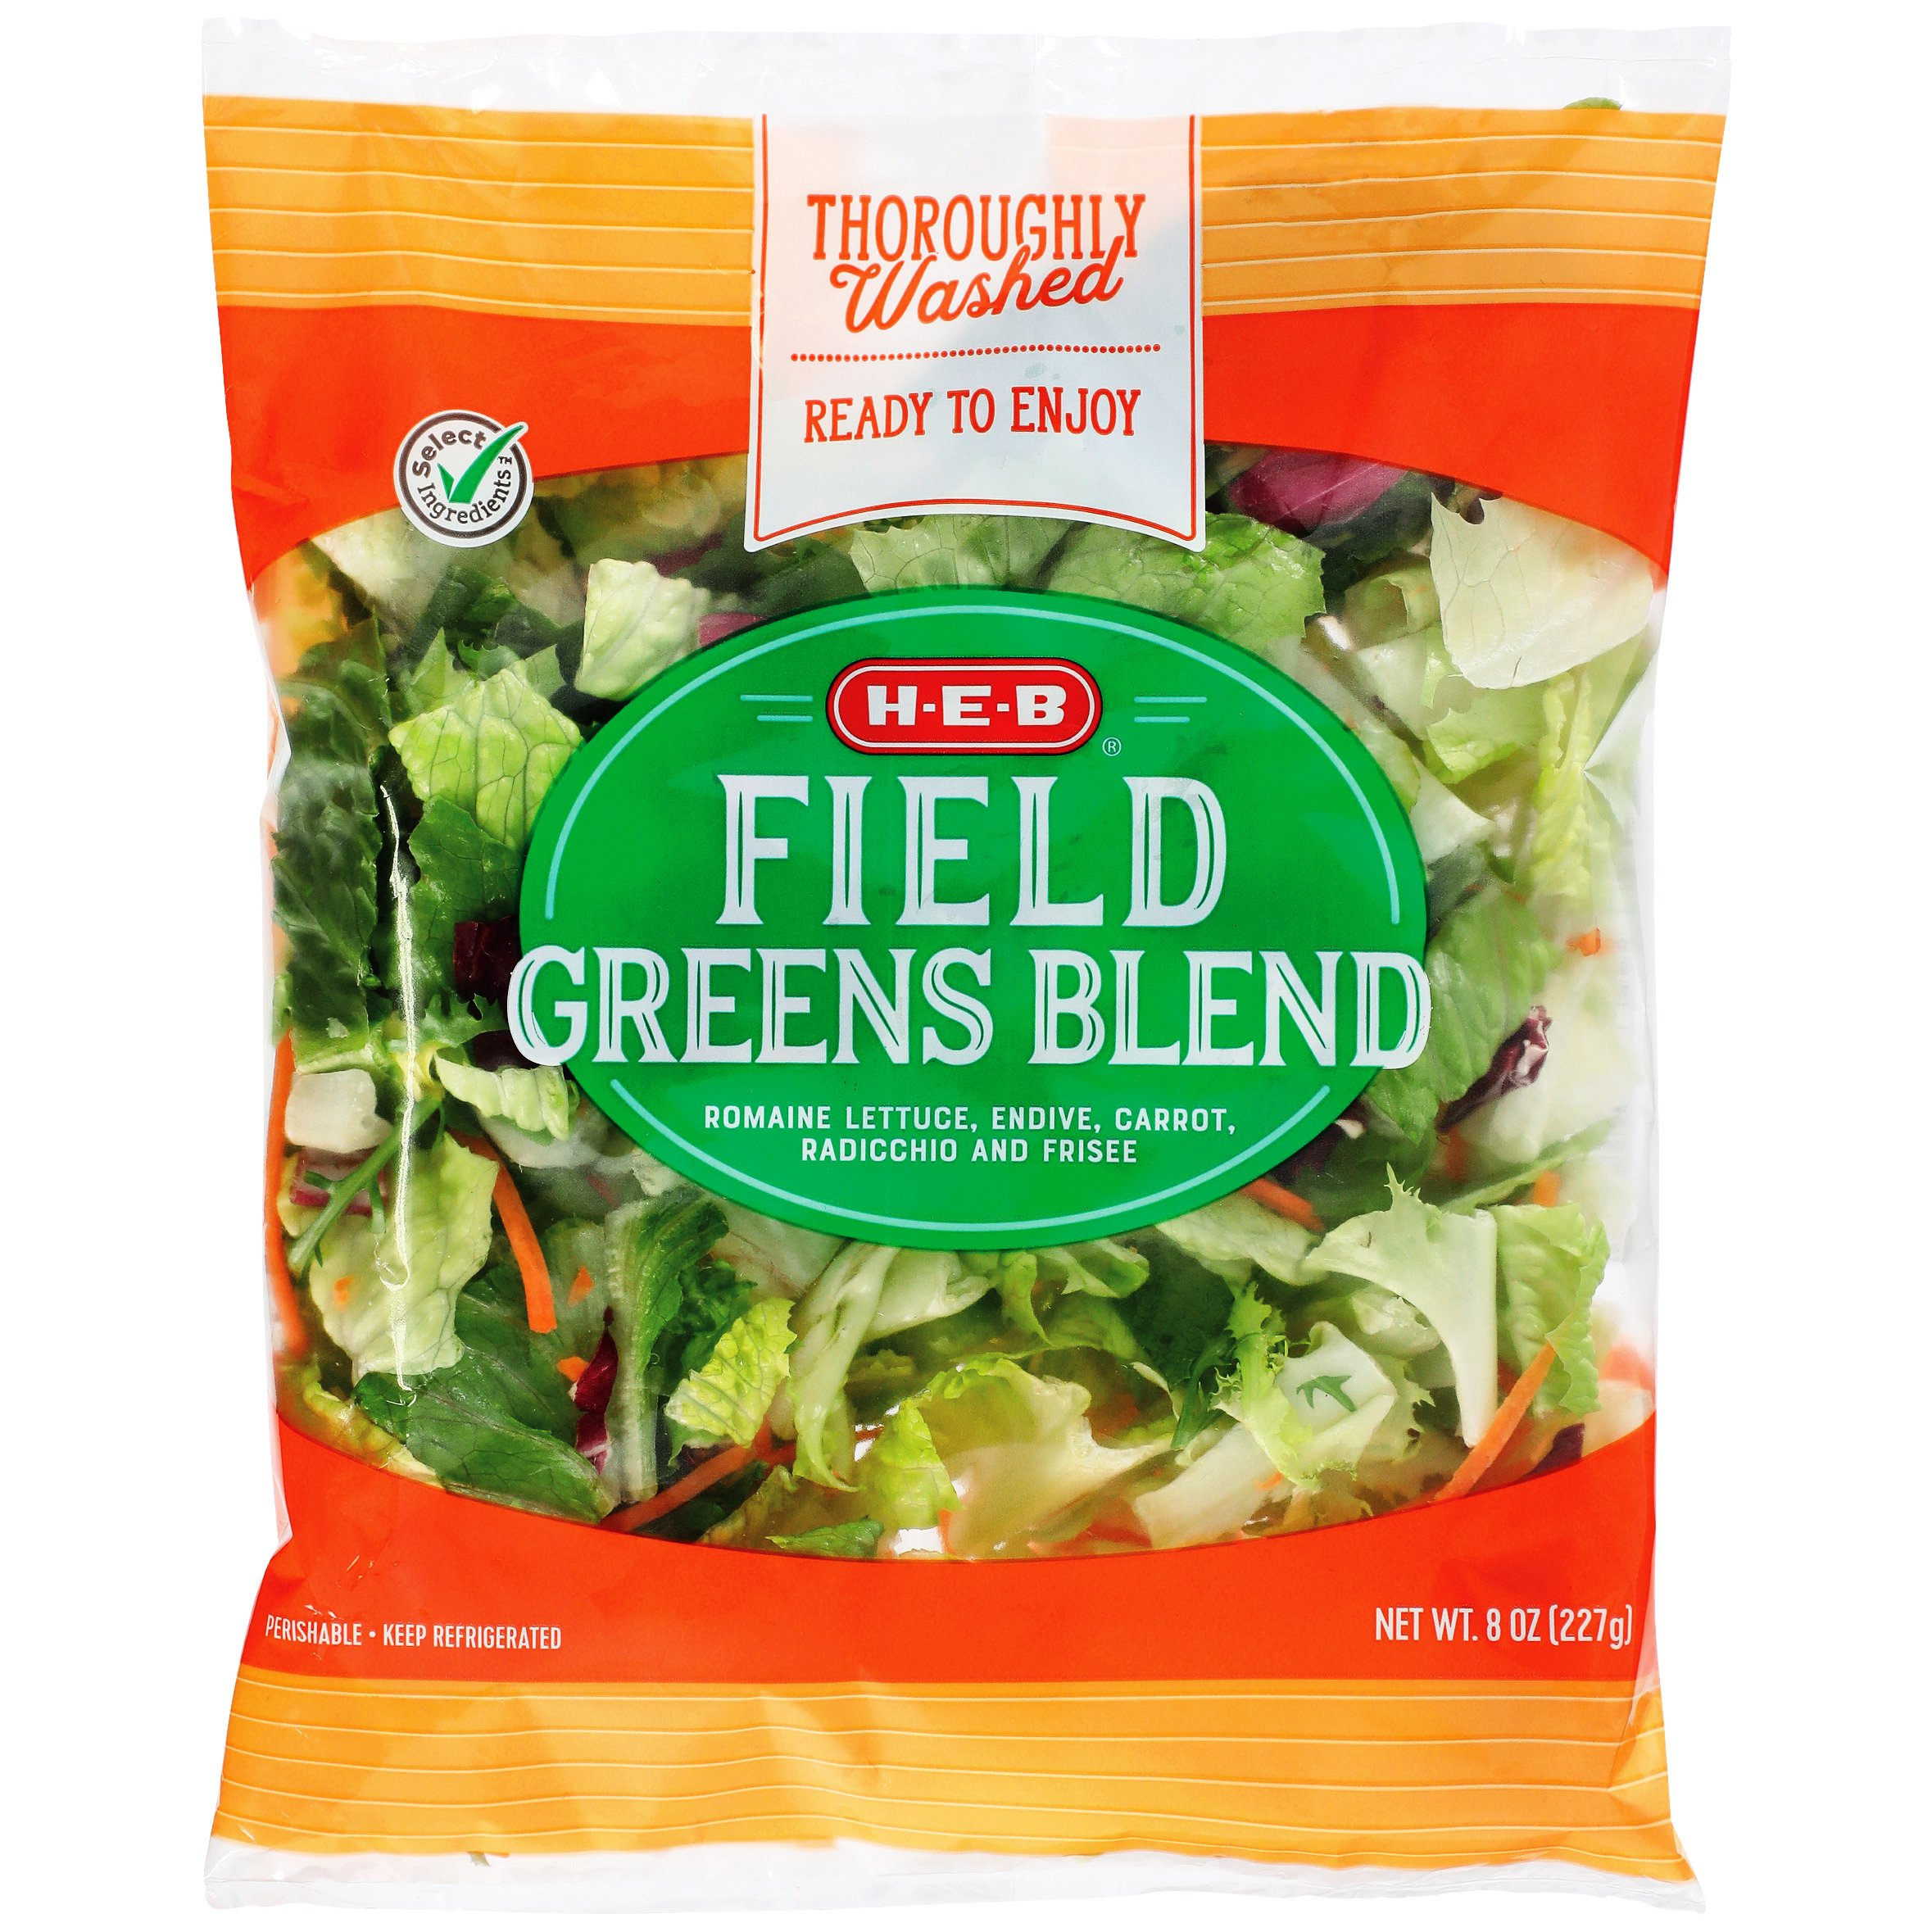 Lettuce & Leafy Greens ‑ Shop H‑E‑B Everyday Low Prices